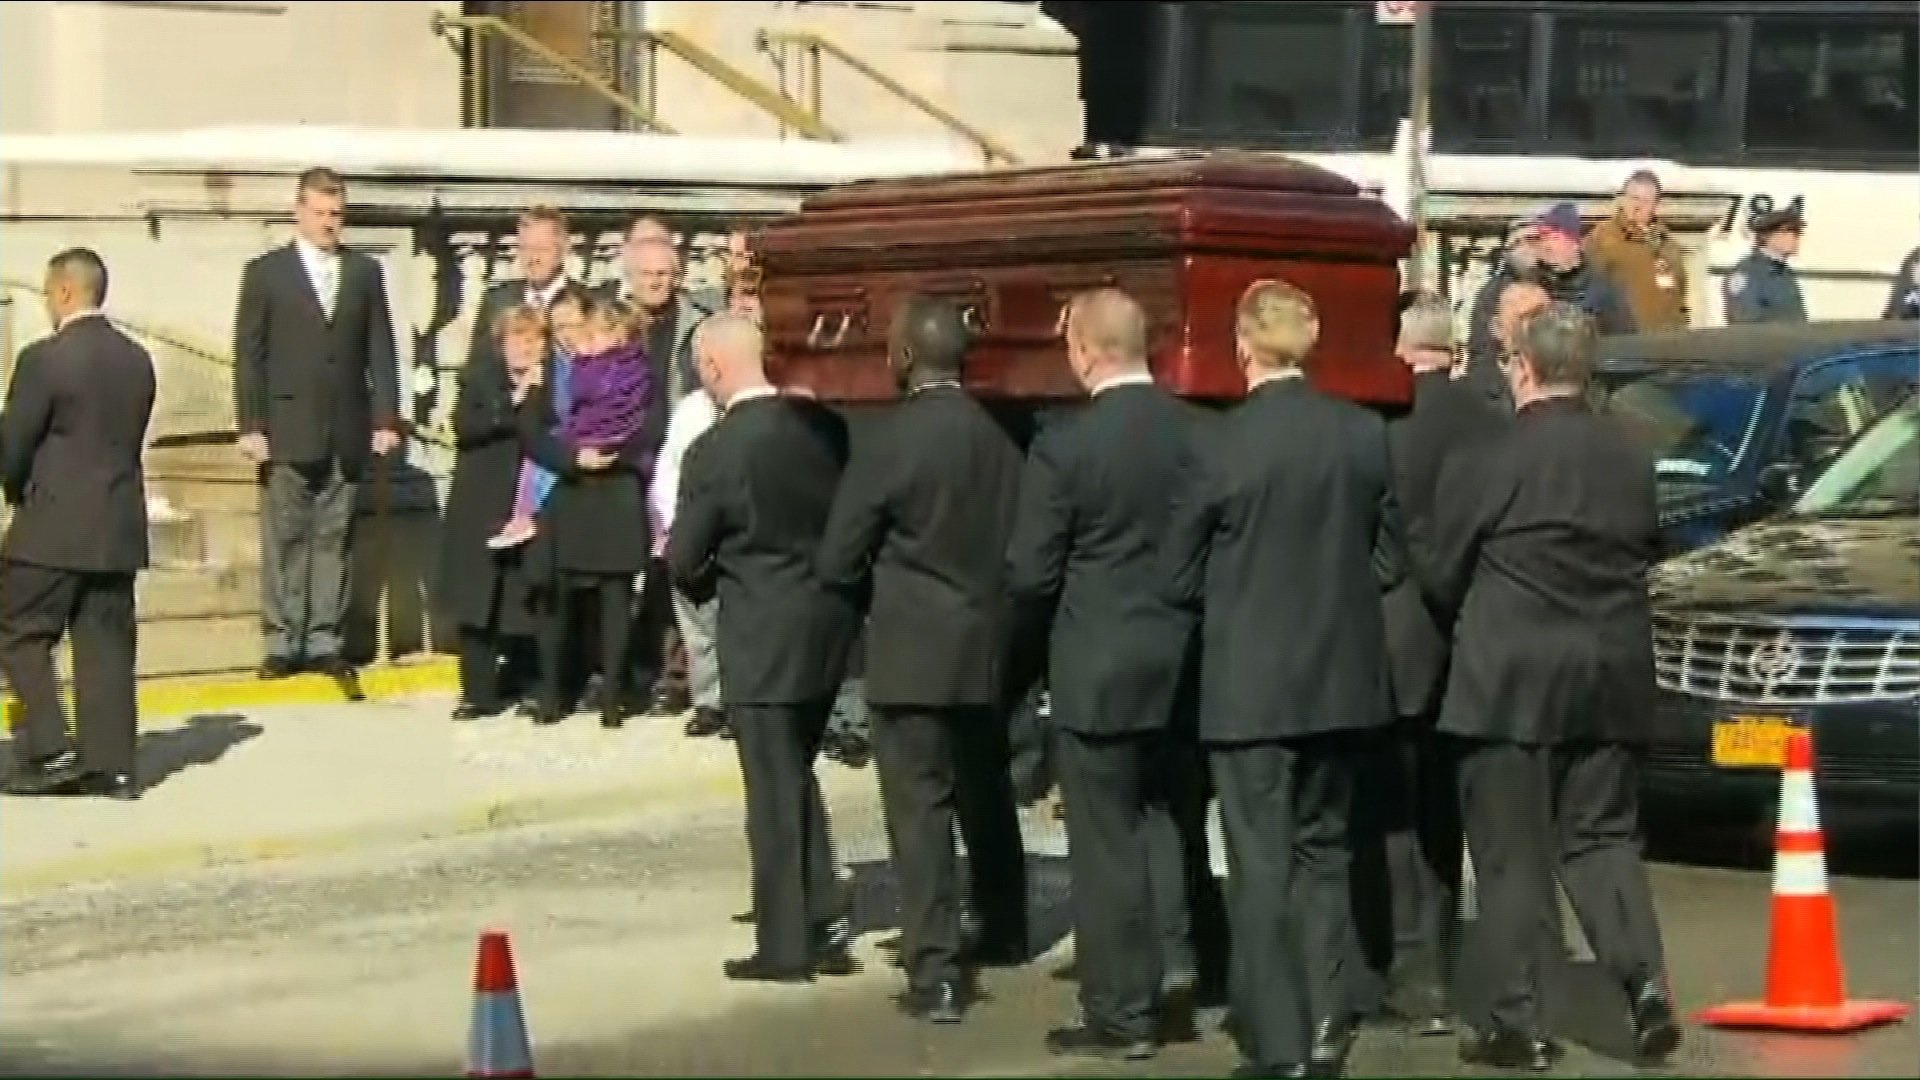 Philip Seymour Hoffman mourned at private funeral ...